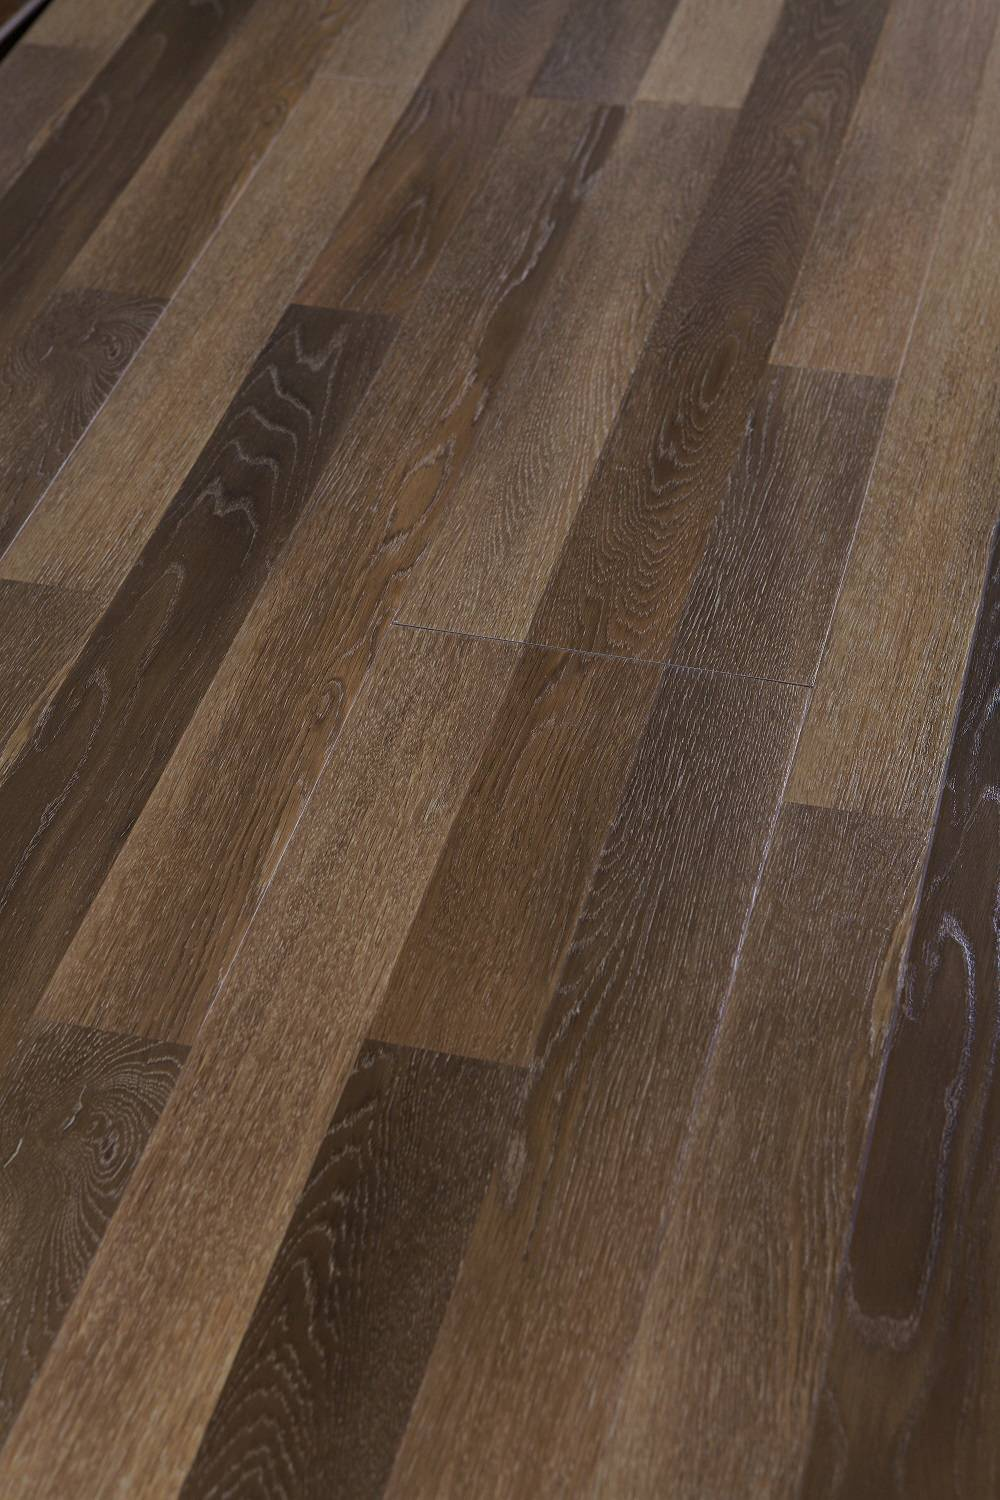 ламинат matflooring mf017 лидо 34кл 1215*240*8мм (2,6244м2/9шт)